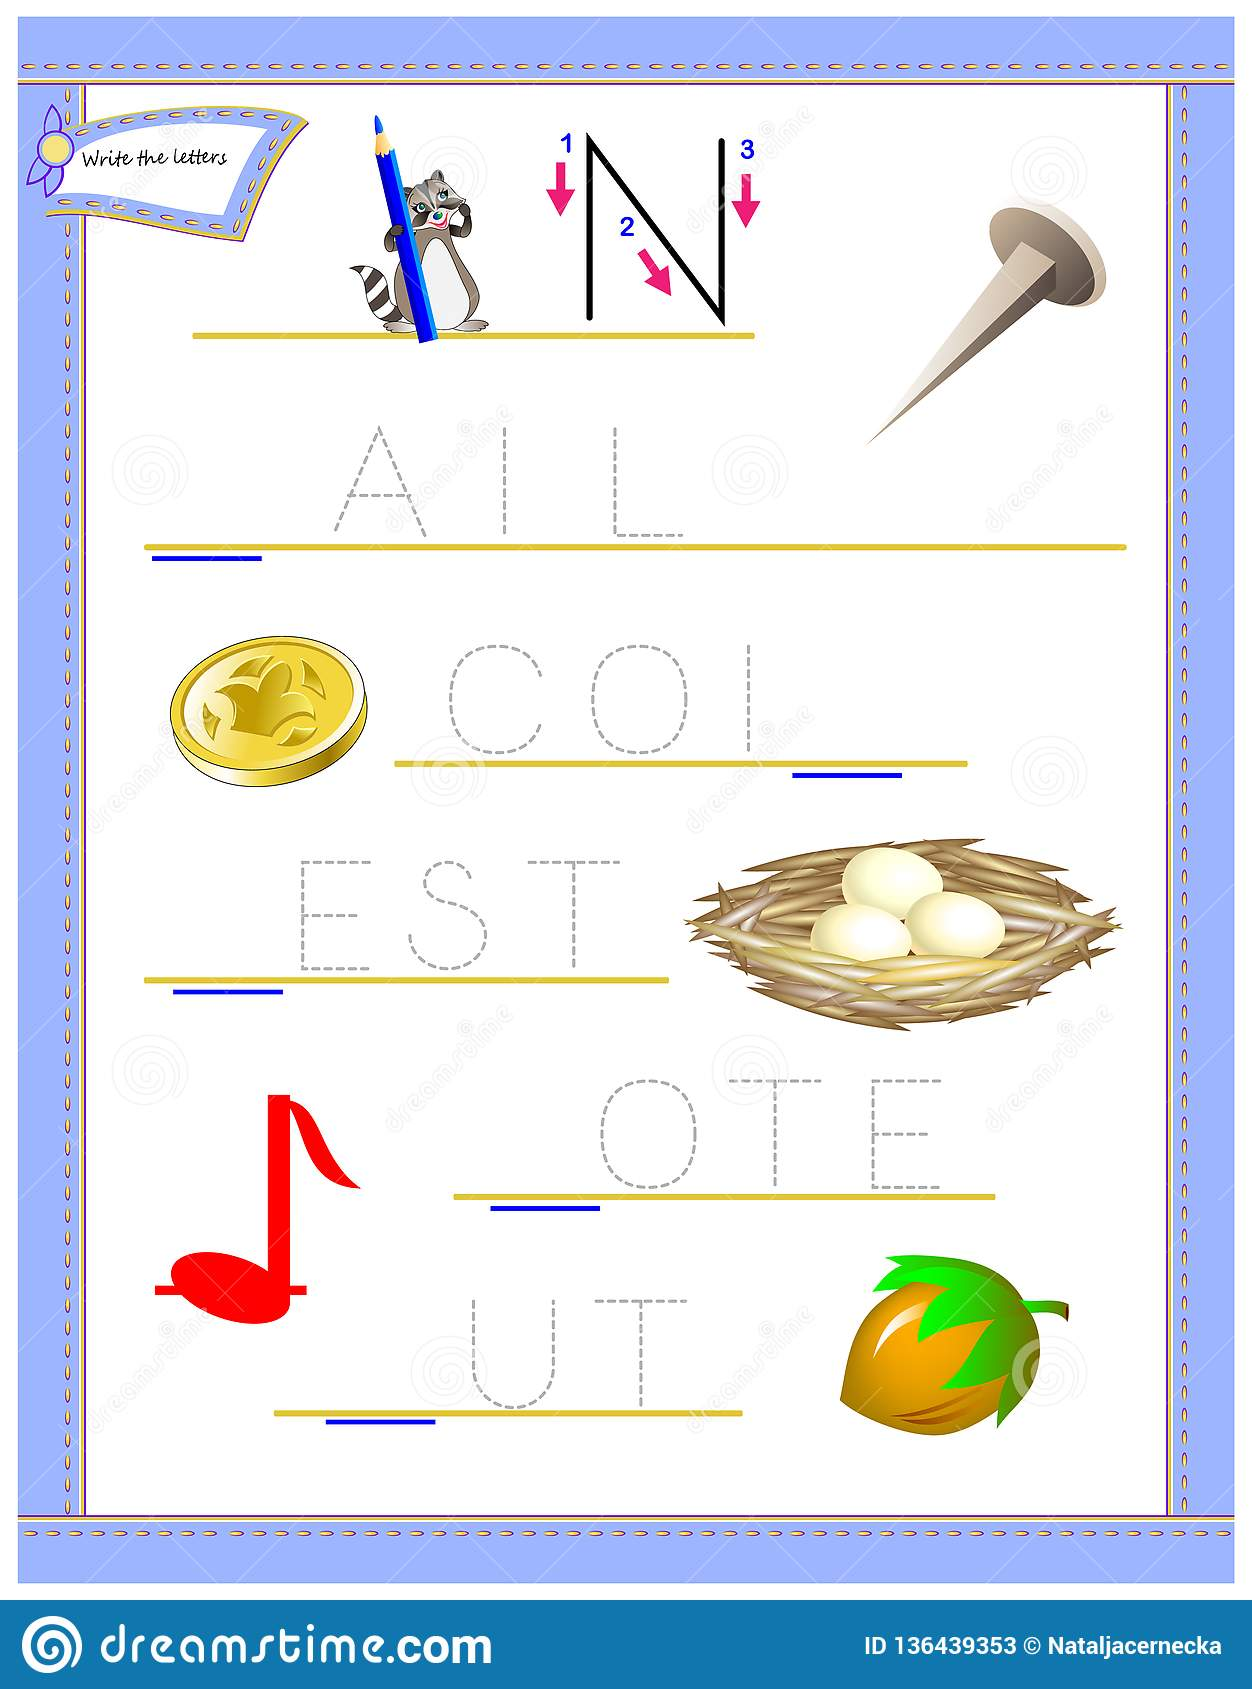 photo relating to Letter N Printable titled Tracing Letter N For Exploration English Alphabet. Printable